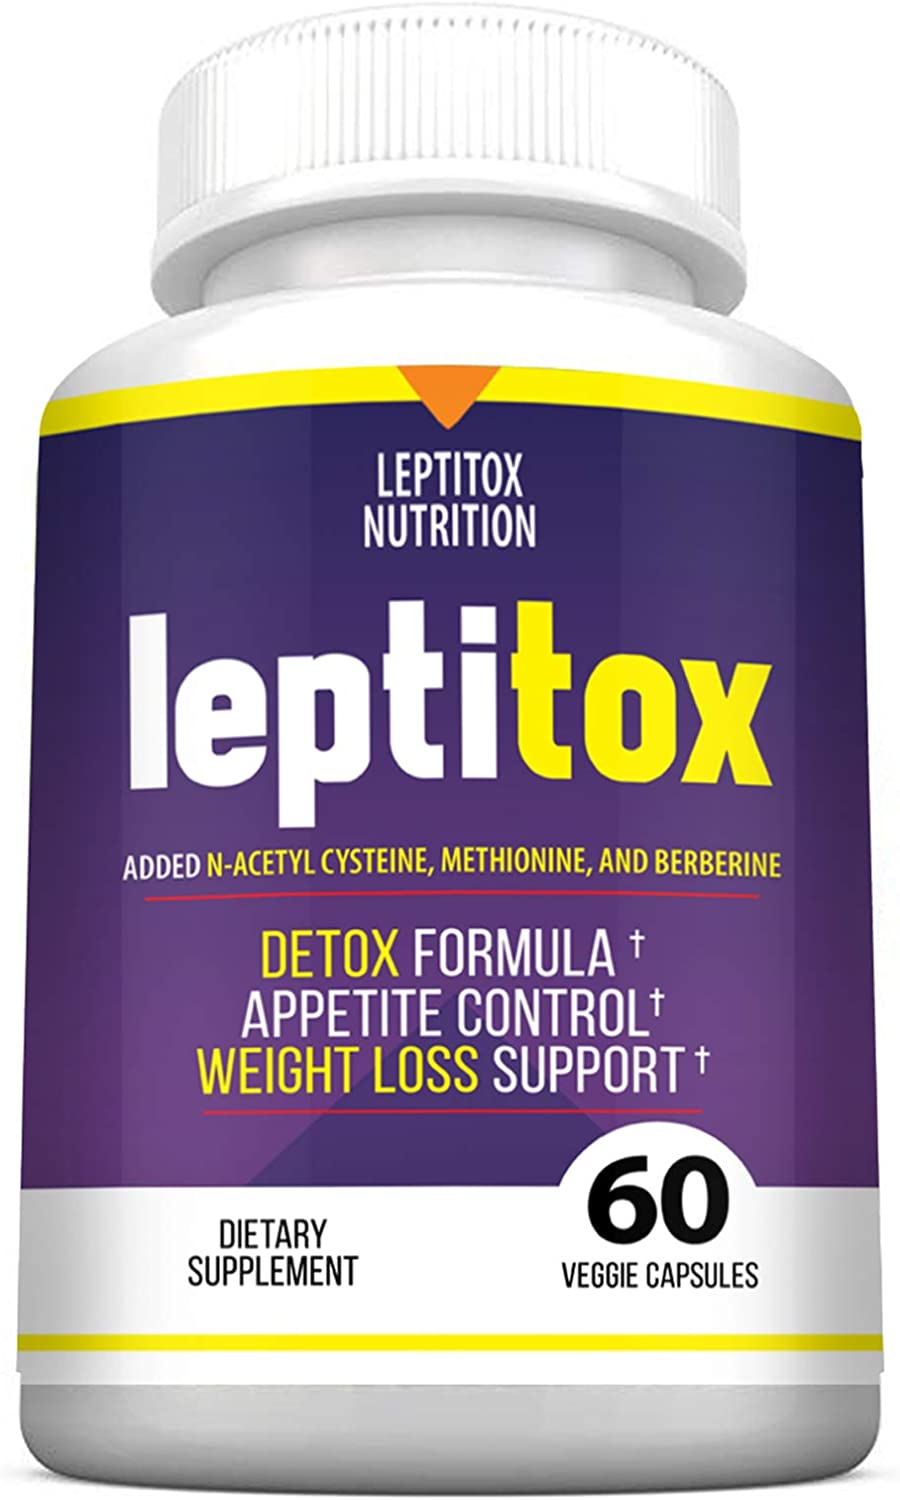 Leptitox Outlet Coupon Code